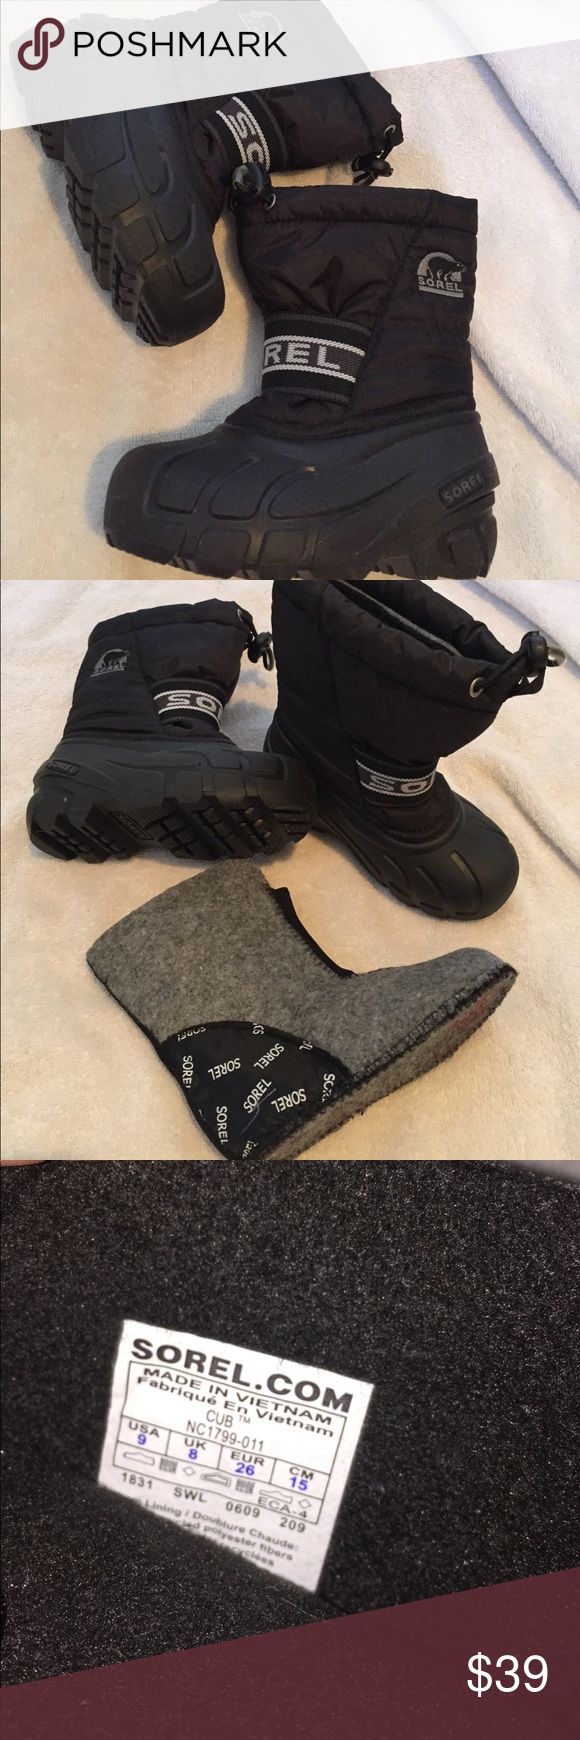 Sorel kids snow boots Excellent condition/no flaws Sorel kids boots size 9. Has warm lining boots/socks included for extra warmth. They are not too heavy. Color black Sorel Shoes Rain & Snow Boots